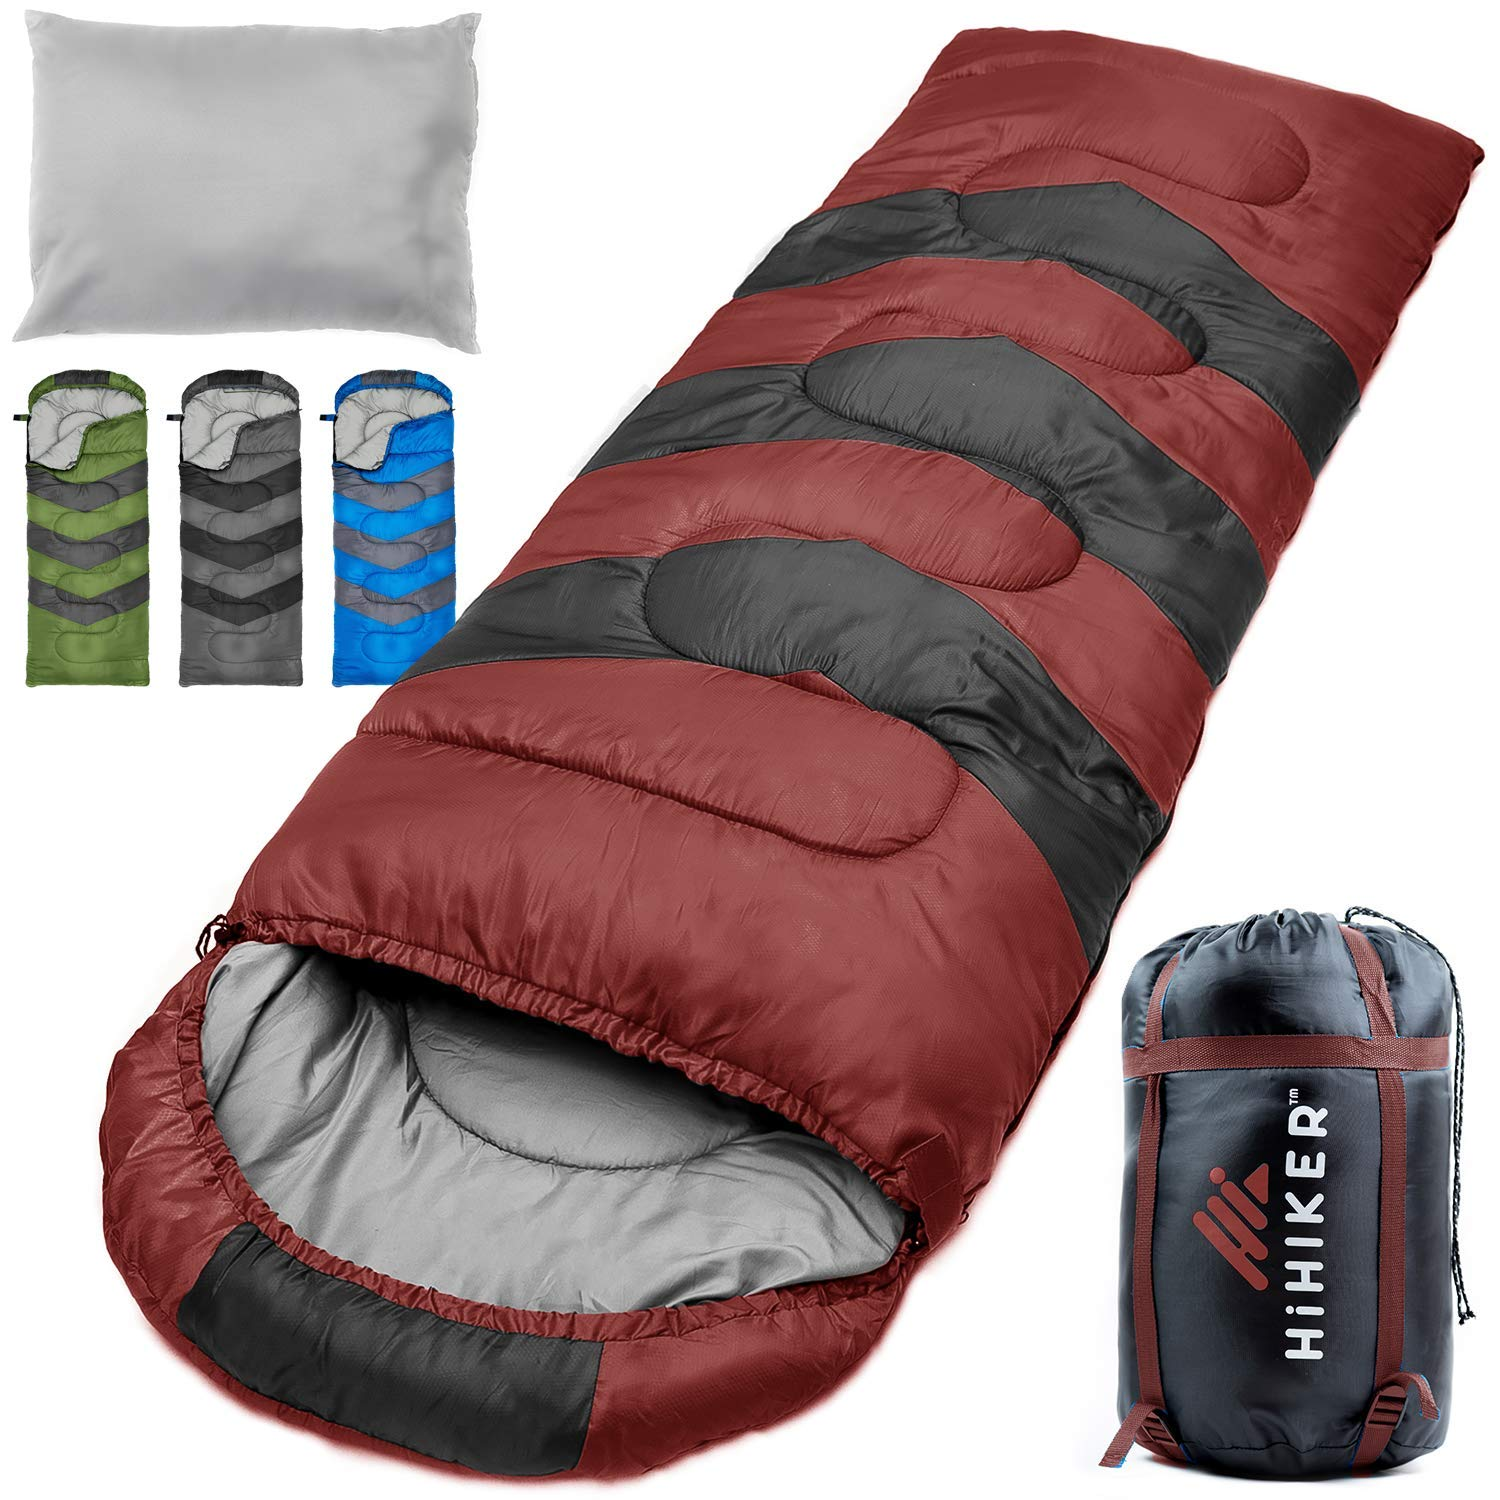 HiHiker Camping Sleeping Bag + Travel Pillow w/Compact Compression Sack - 4 Season Sleeping Bag for Adults & Kids - Lightweight Warm and Washable, for Hiking Traveling & Outdoor Activities (Red) by HiHiker